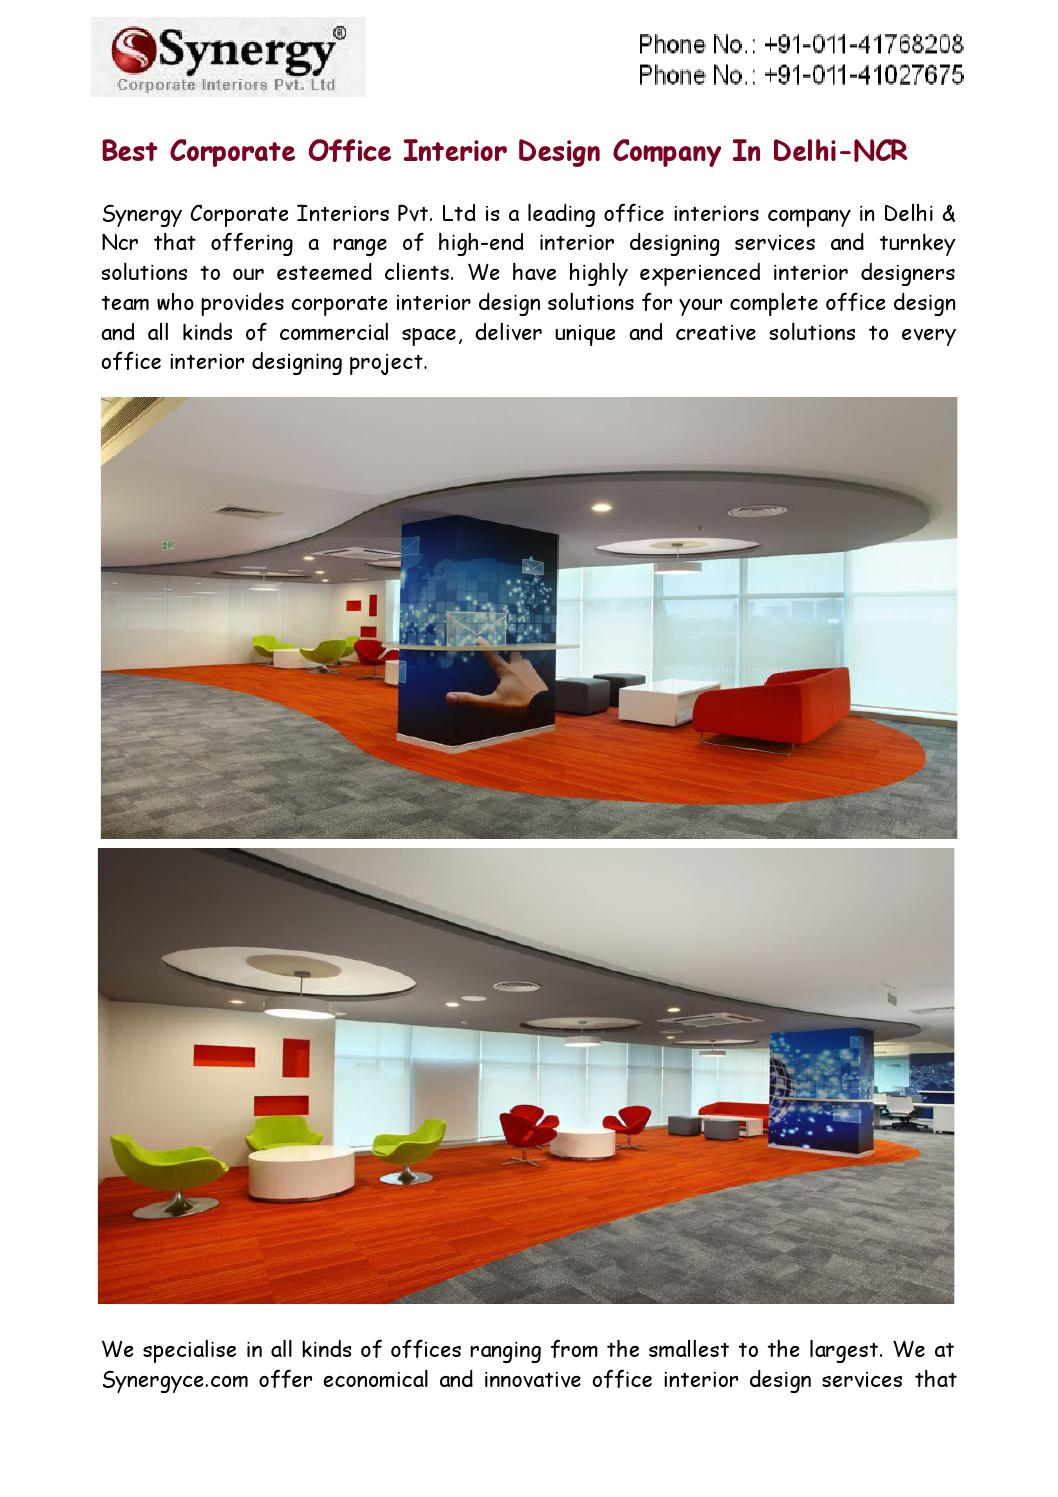 Best Corporate Office Interior Design Company In Delhi Ncr By Synergy Corporate Interiors Pvt